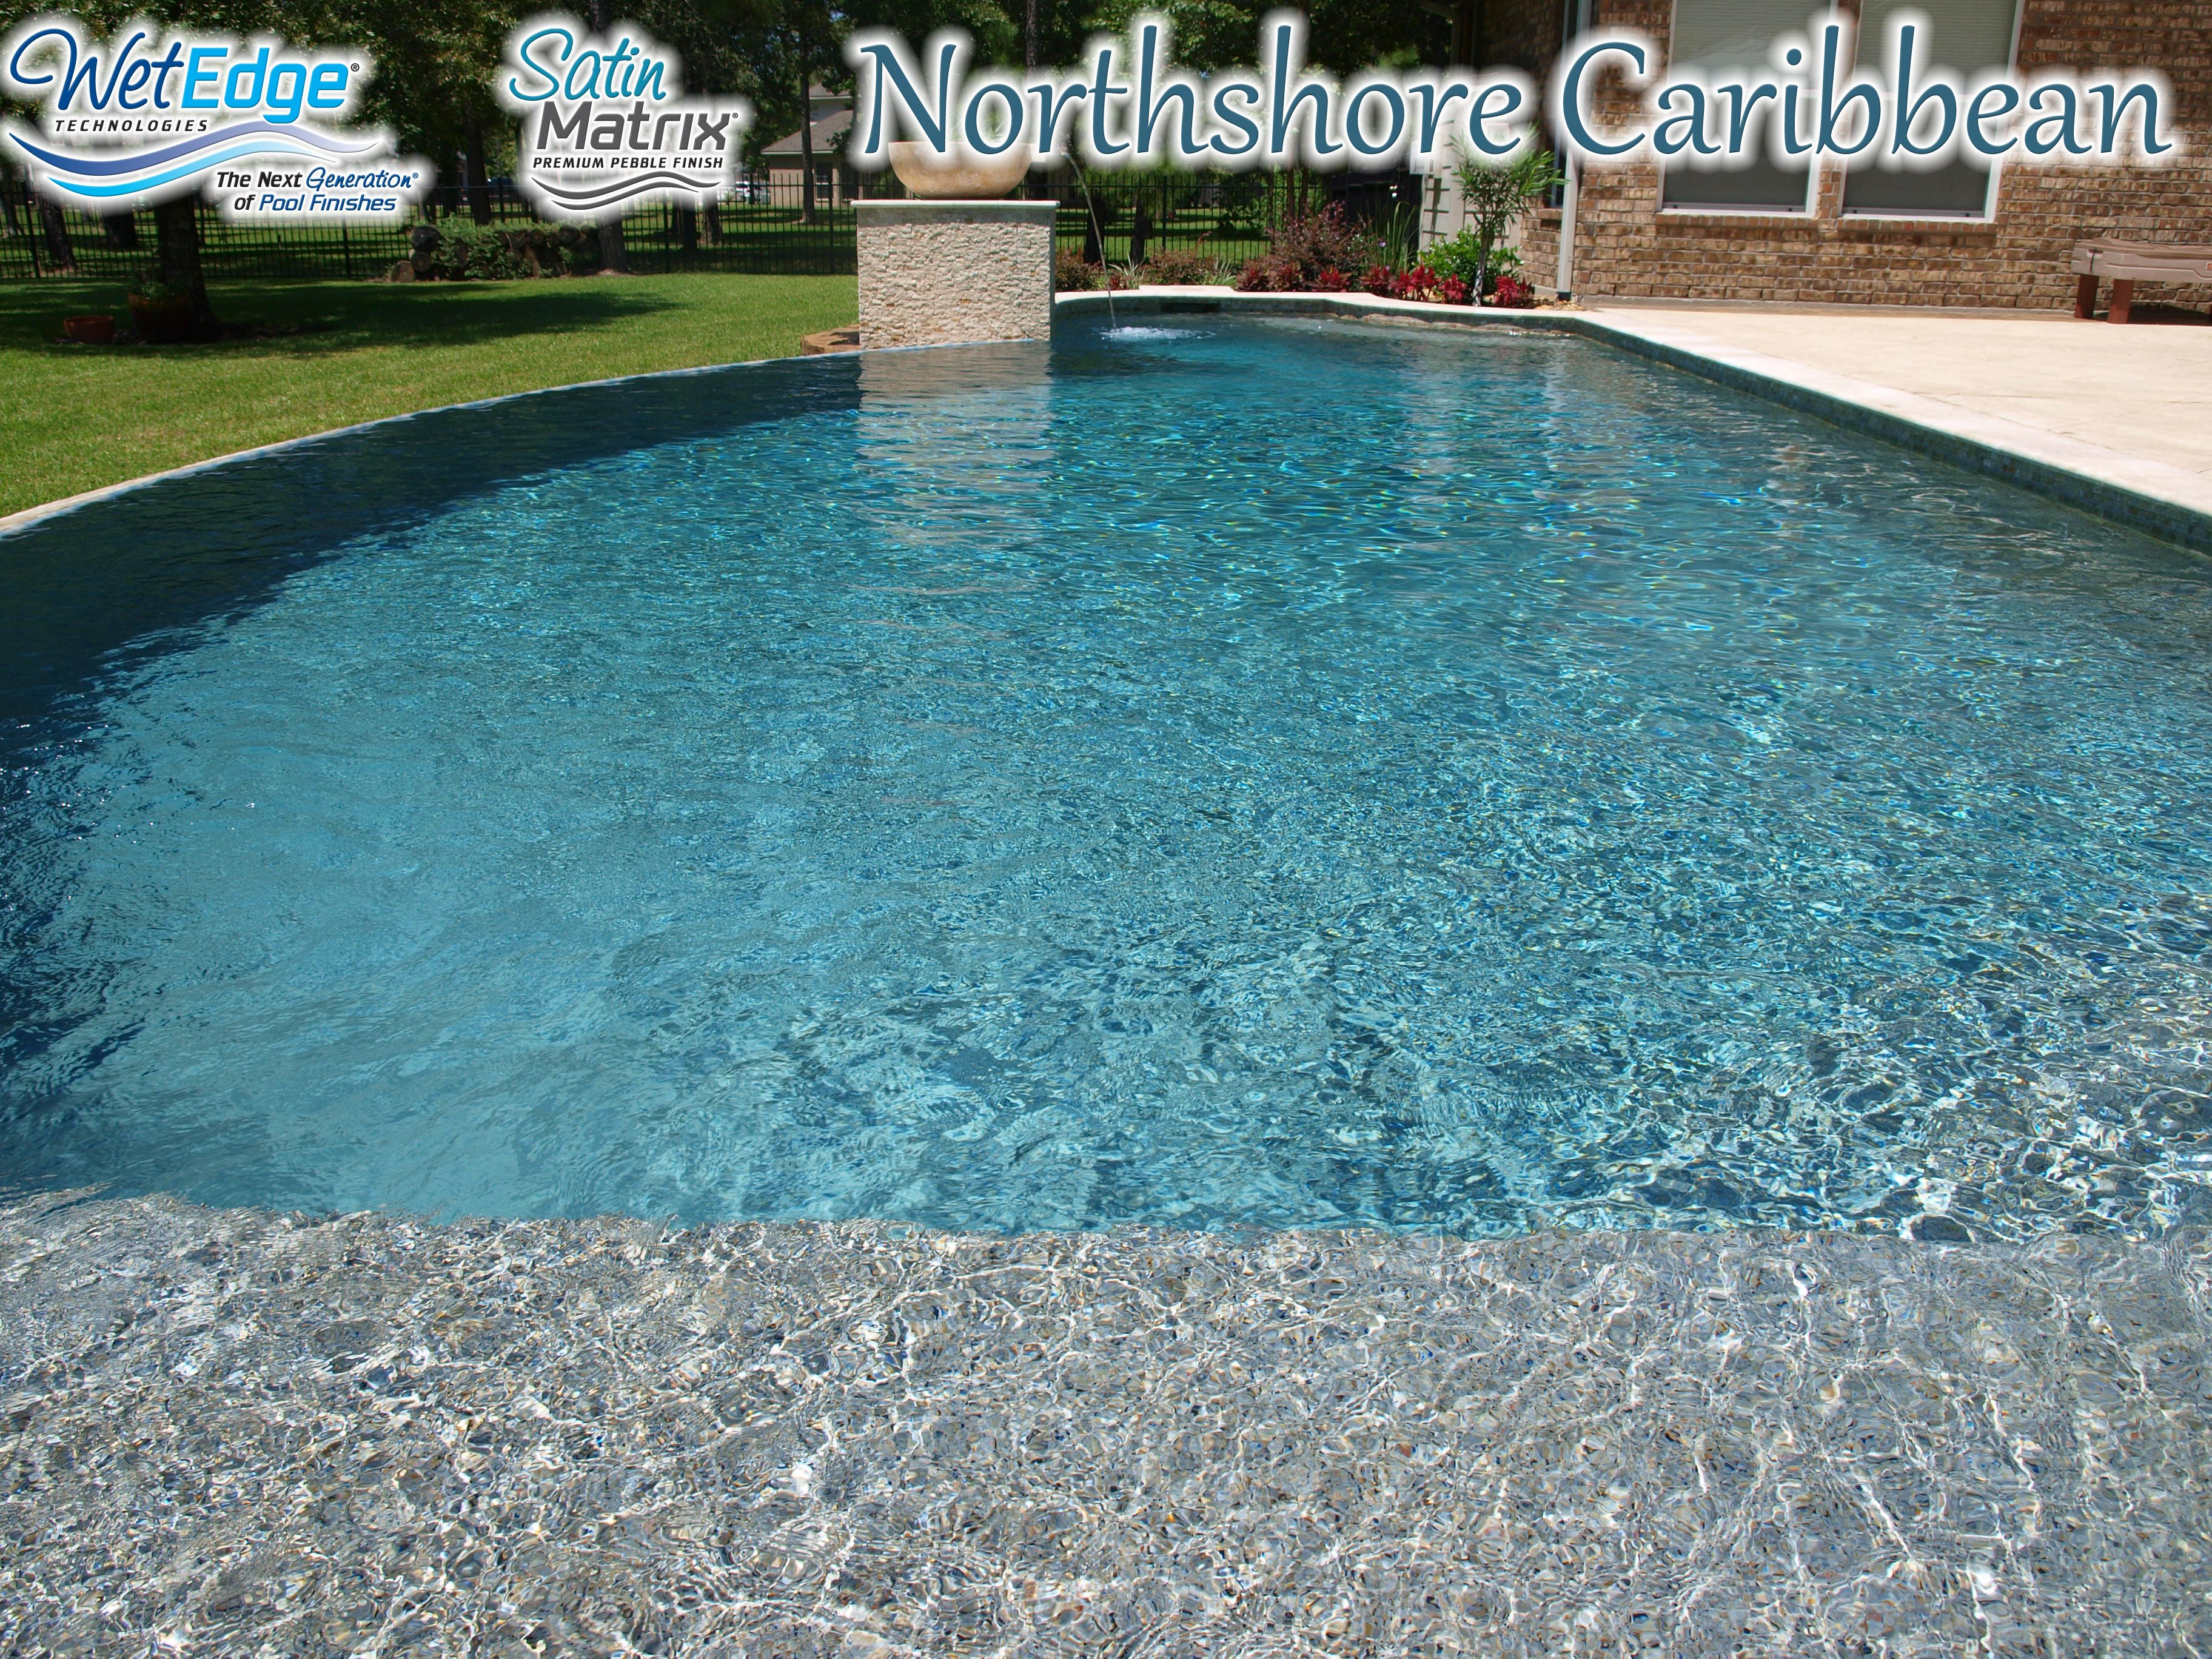 Wonderful Pool Finish Ideas For You To Copy: Pool Plaster, Pool Colors, Vinyl Pool